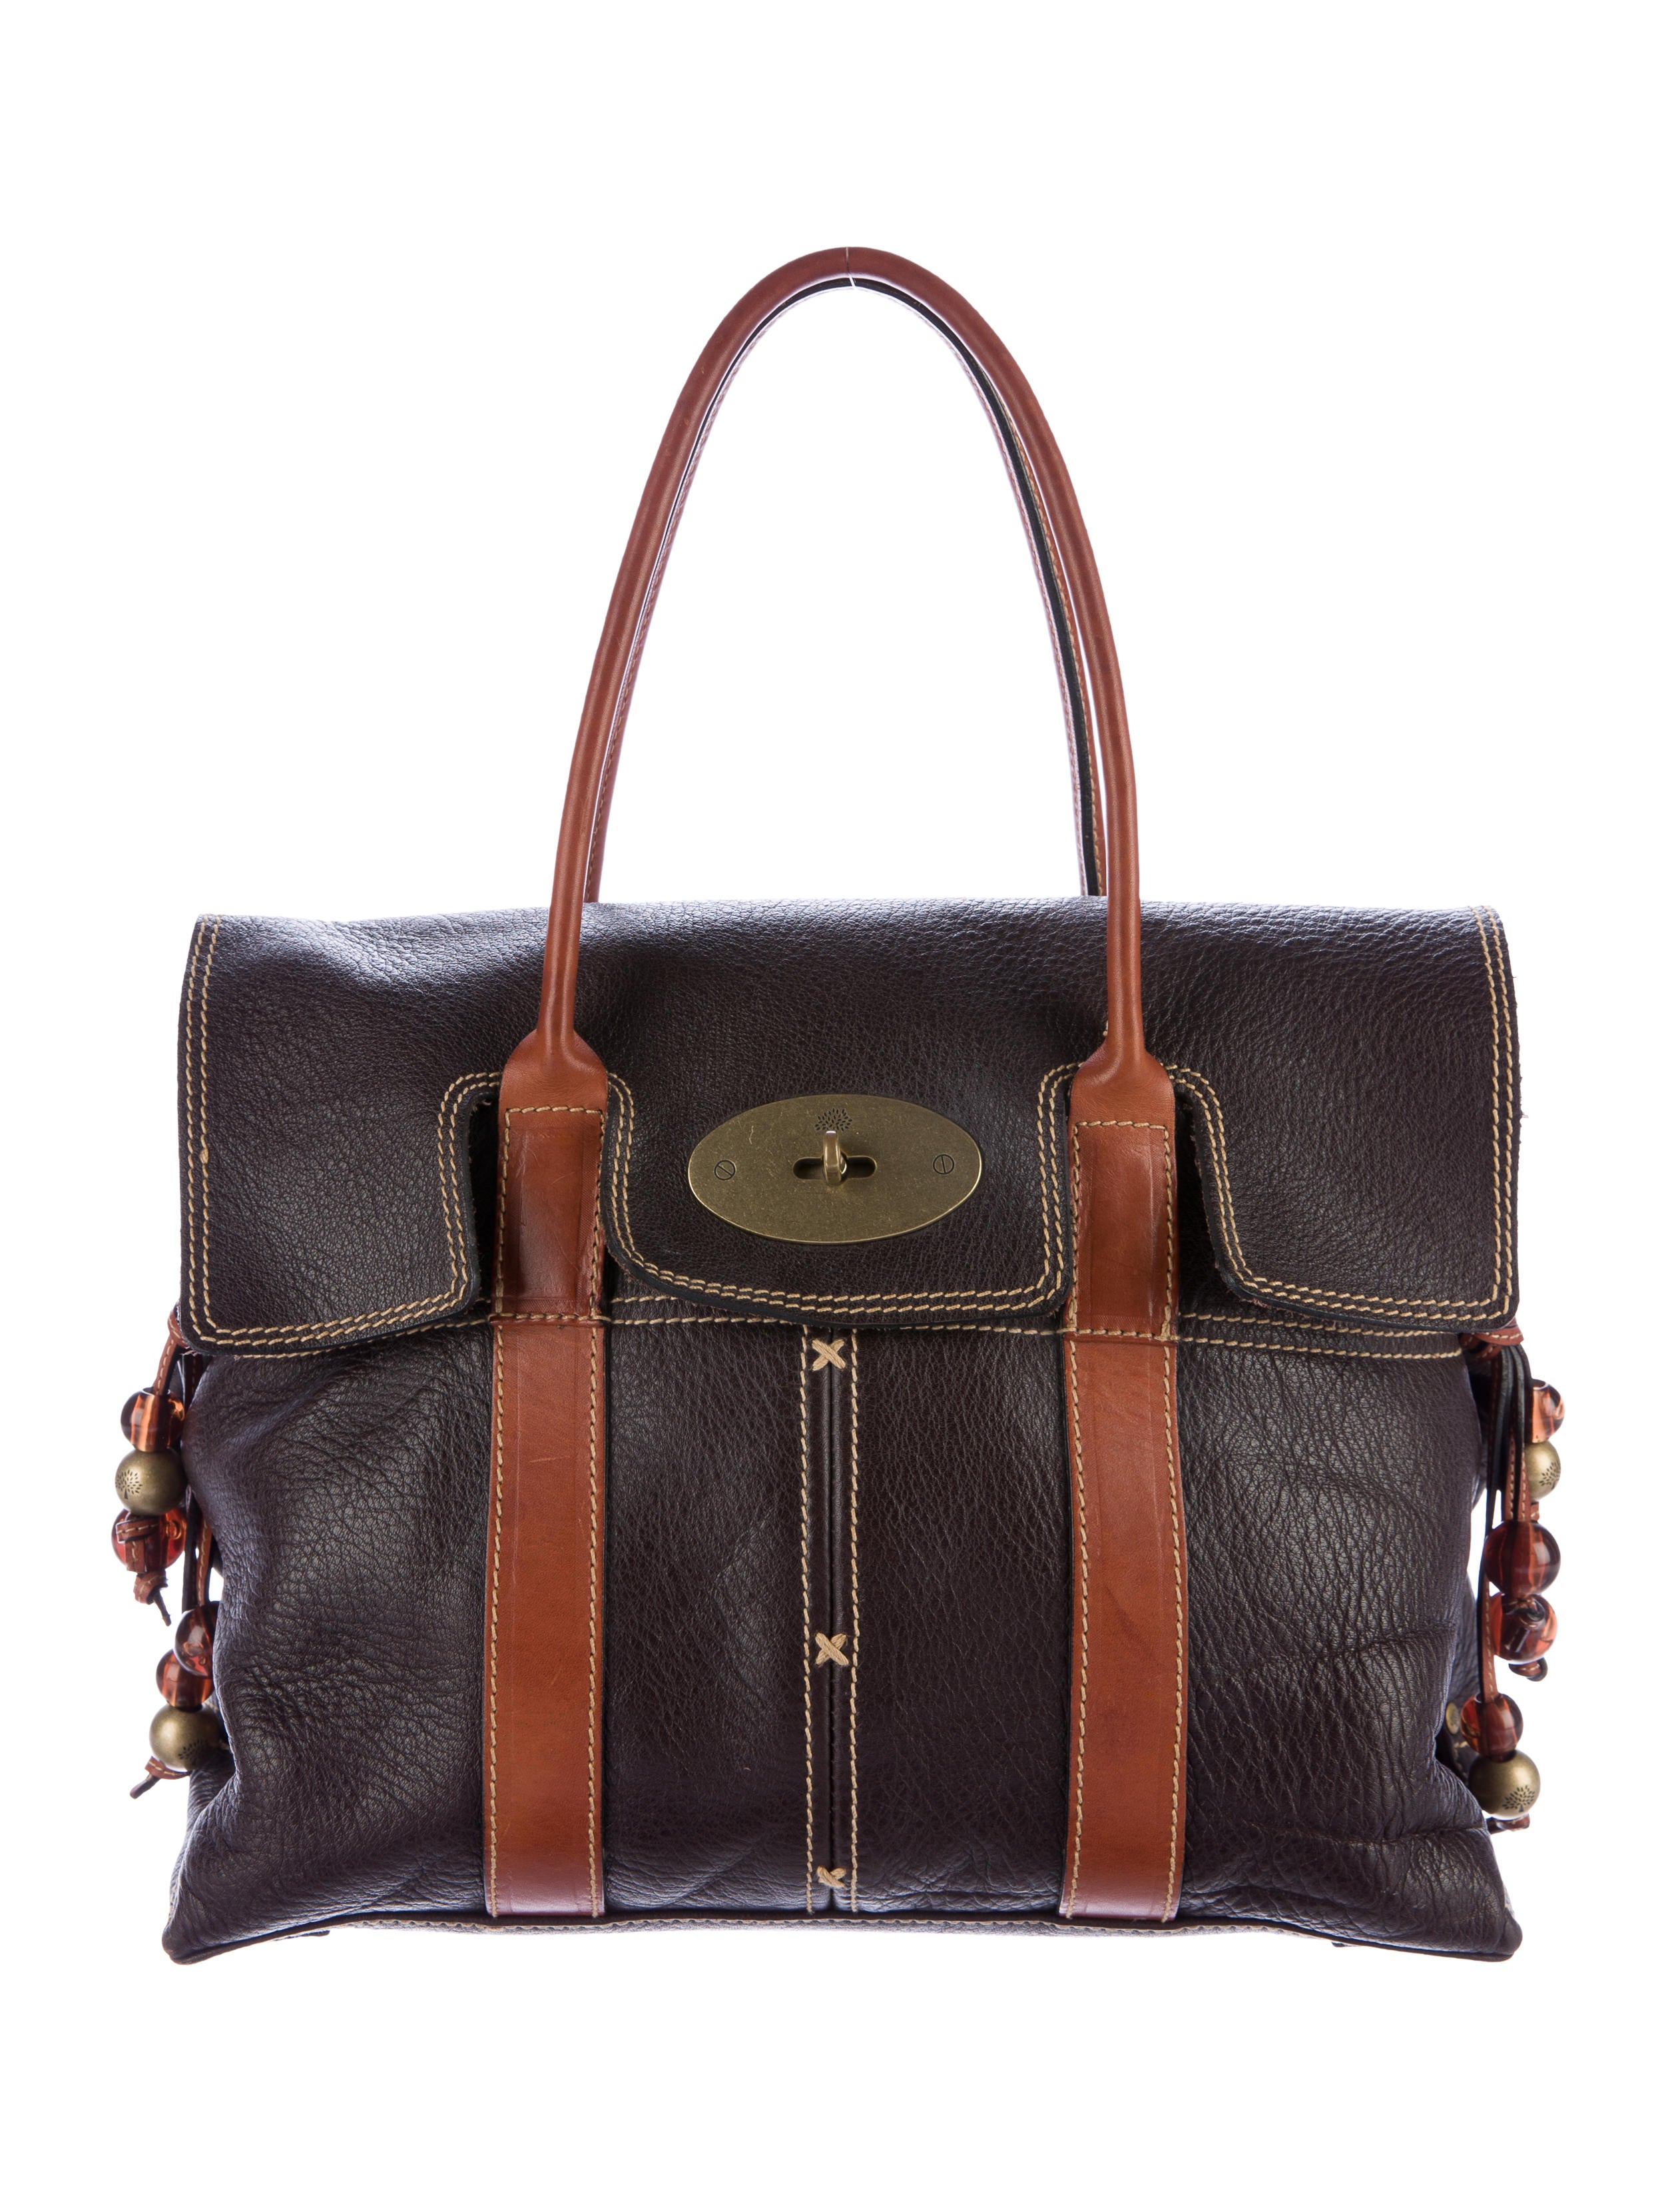 Mulberry leather bayswater bag handbags mul22535 the for The bayswater